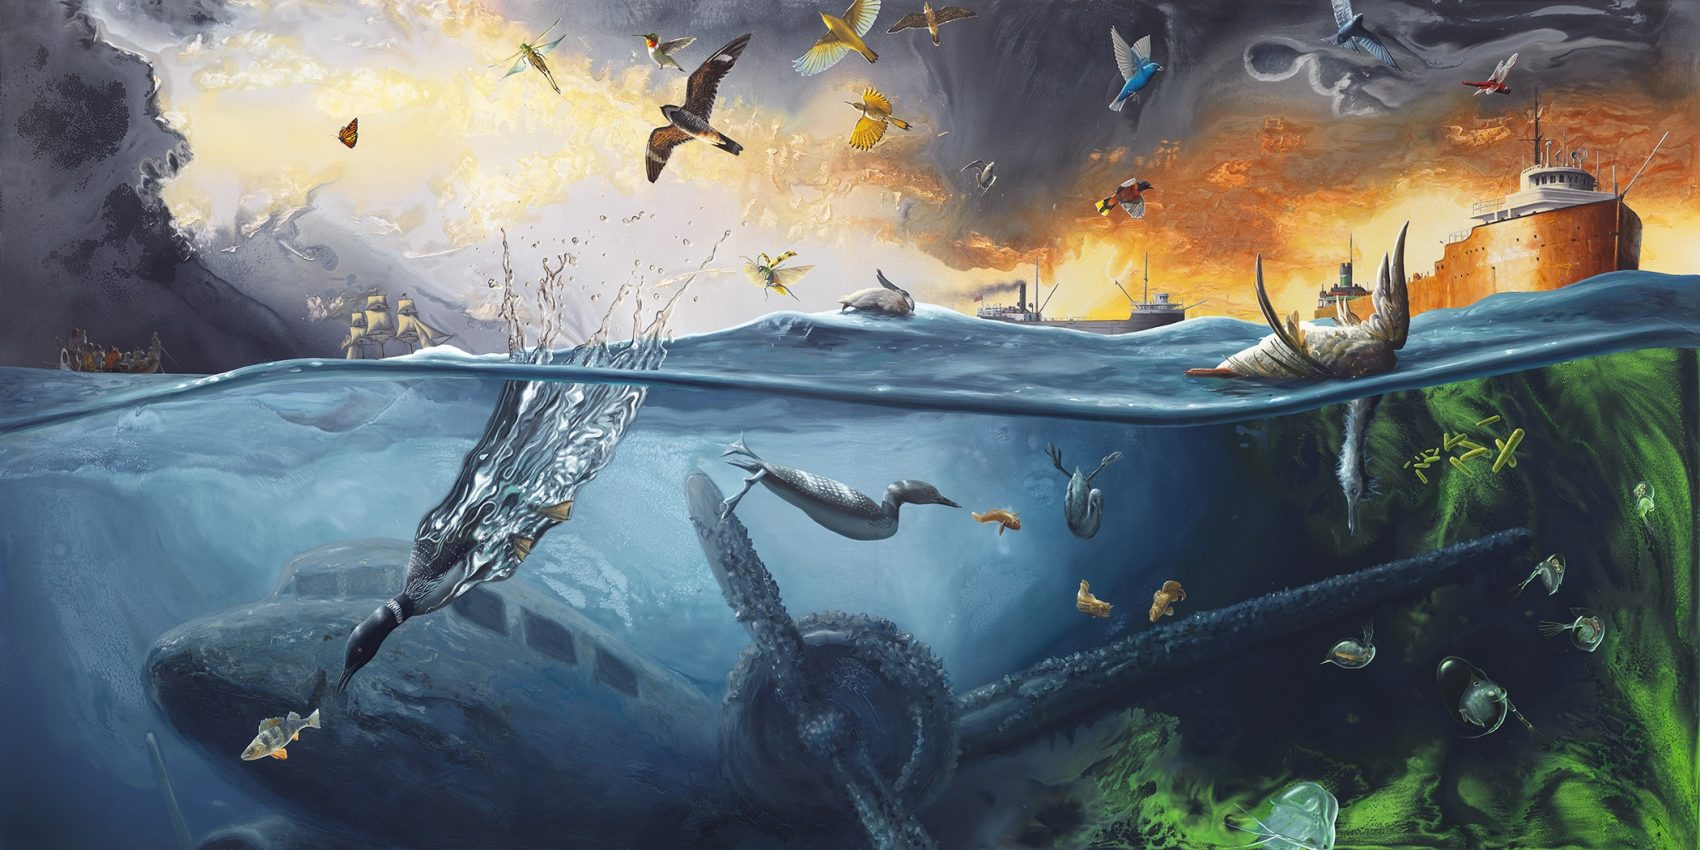 fantastical paintings illustrate great lakes ecology